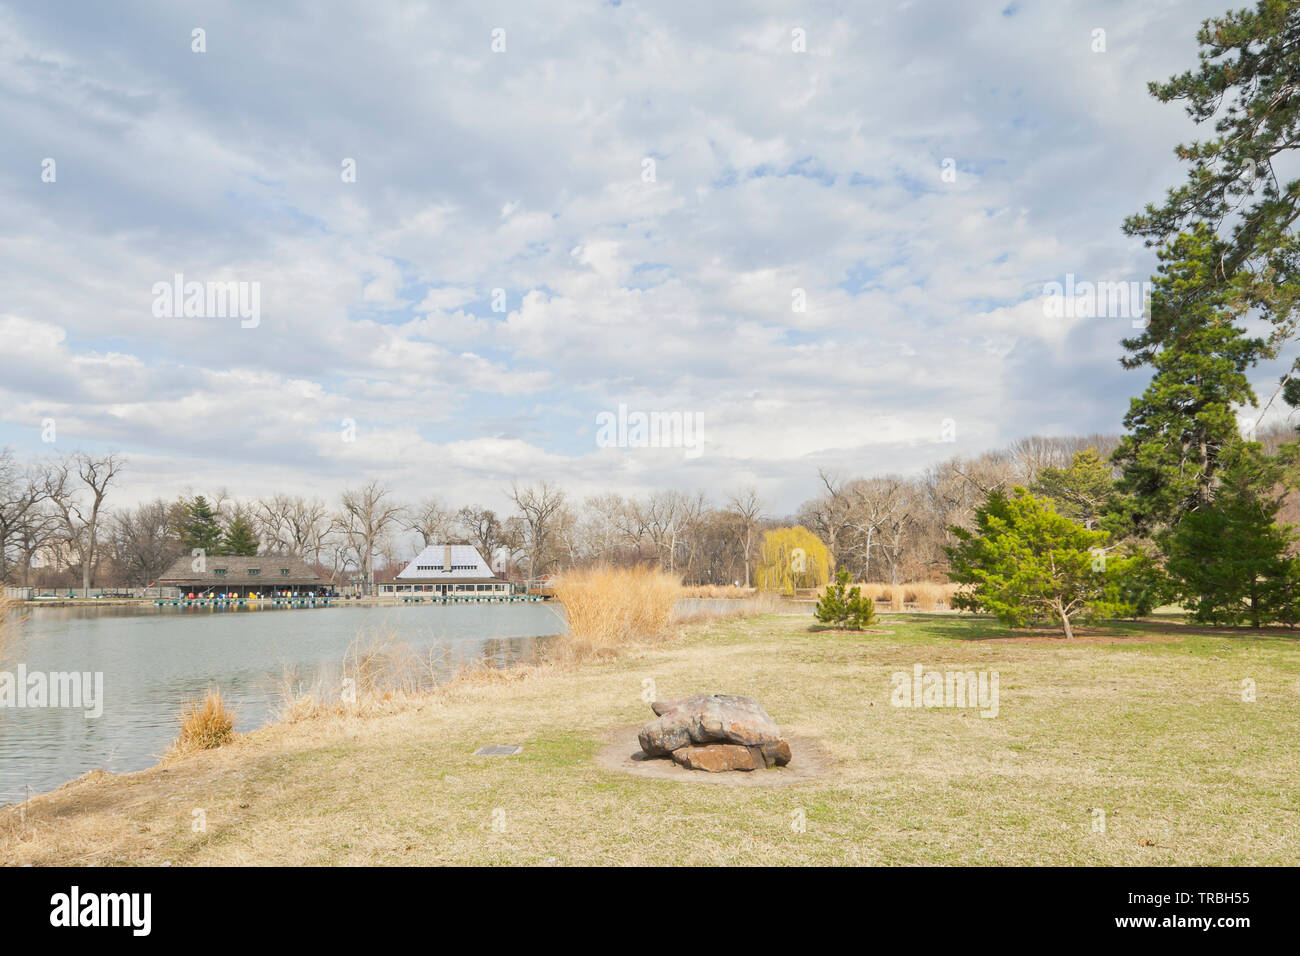 St. Louis Forest Park beside the Post-Dispatch Lake. Rock memorializing the lake, a budding weeping willow, and the Boathouse under partly cloudy sky. - Stock Image